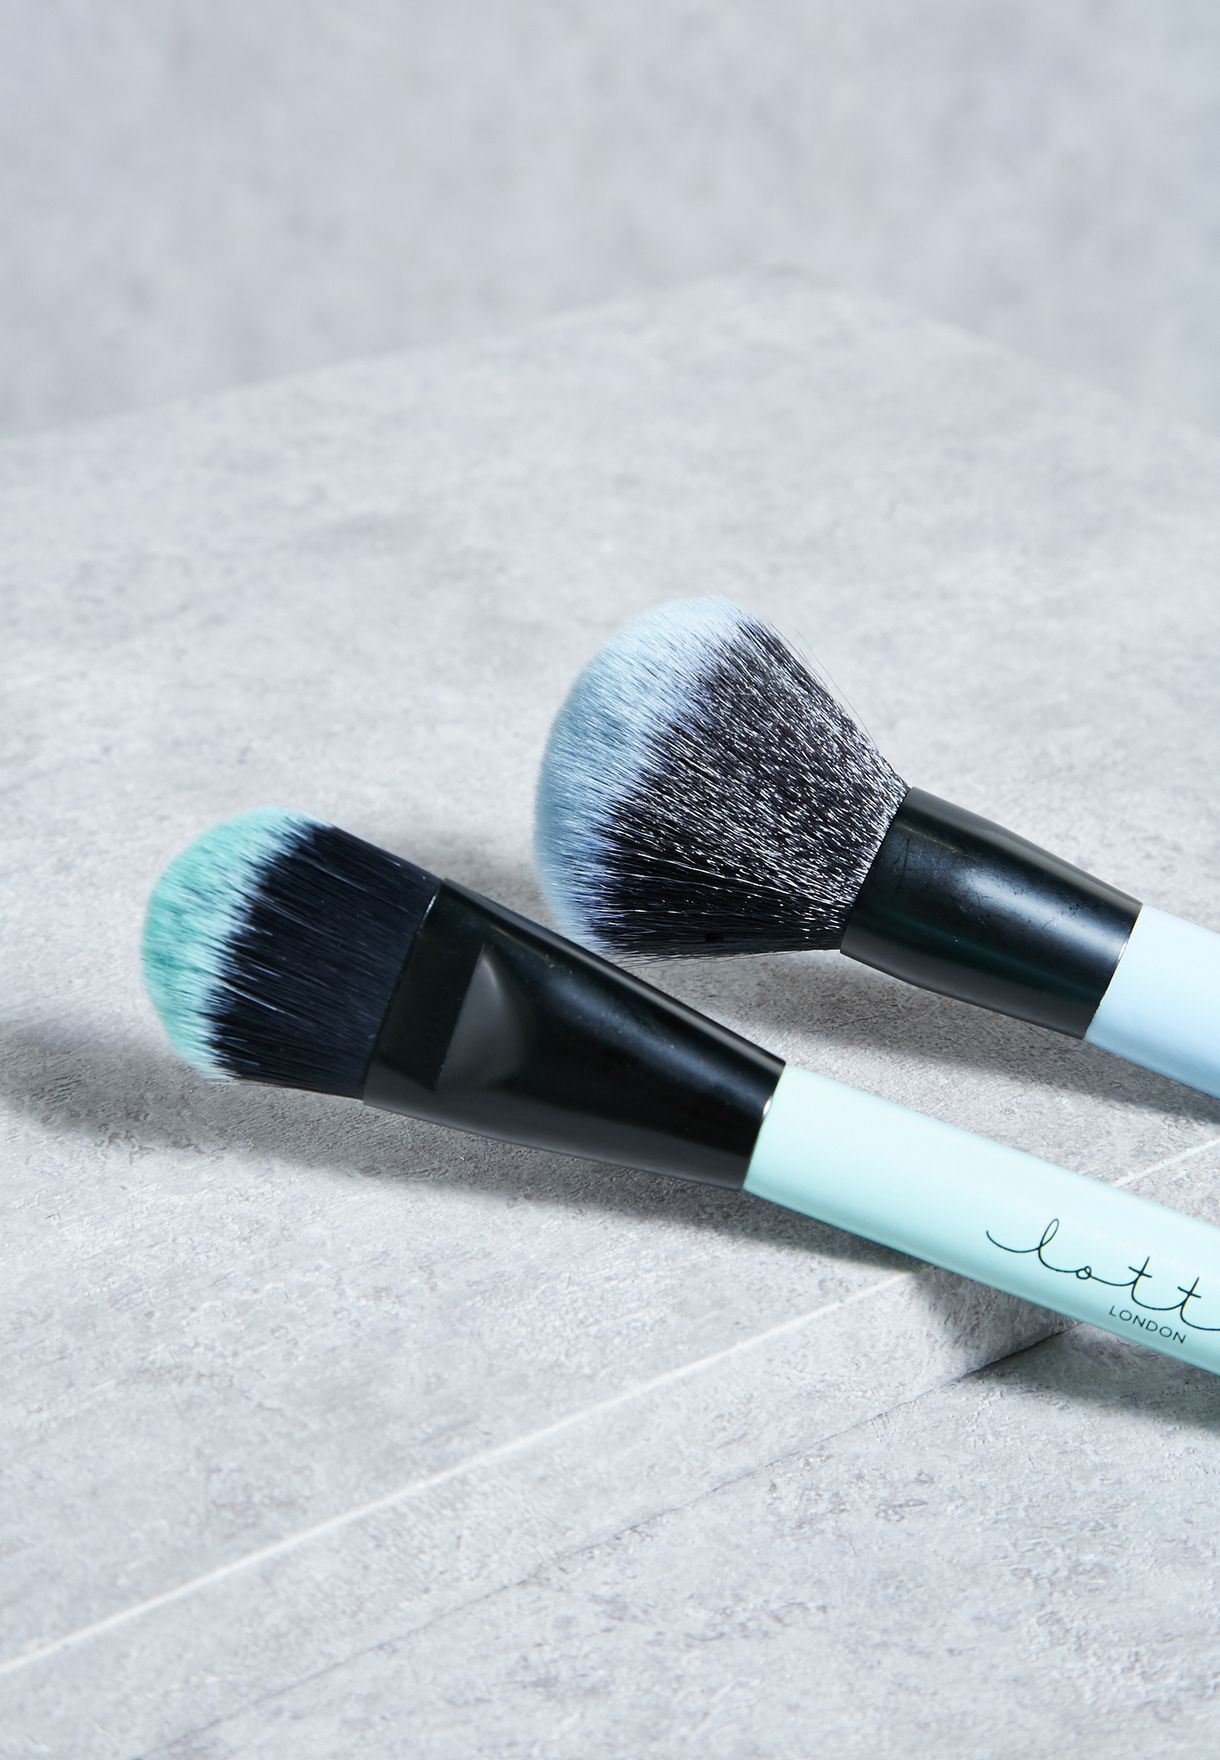 The Best Of The Brushes Collection